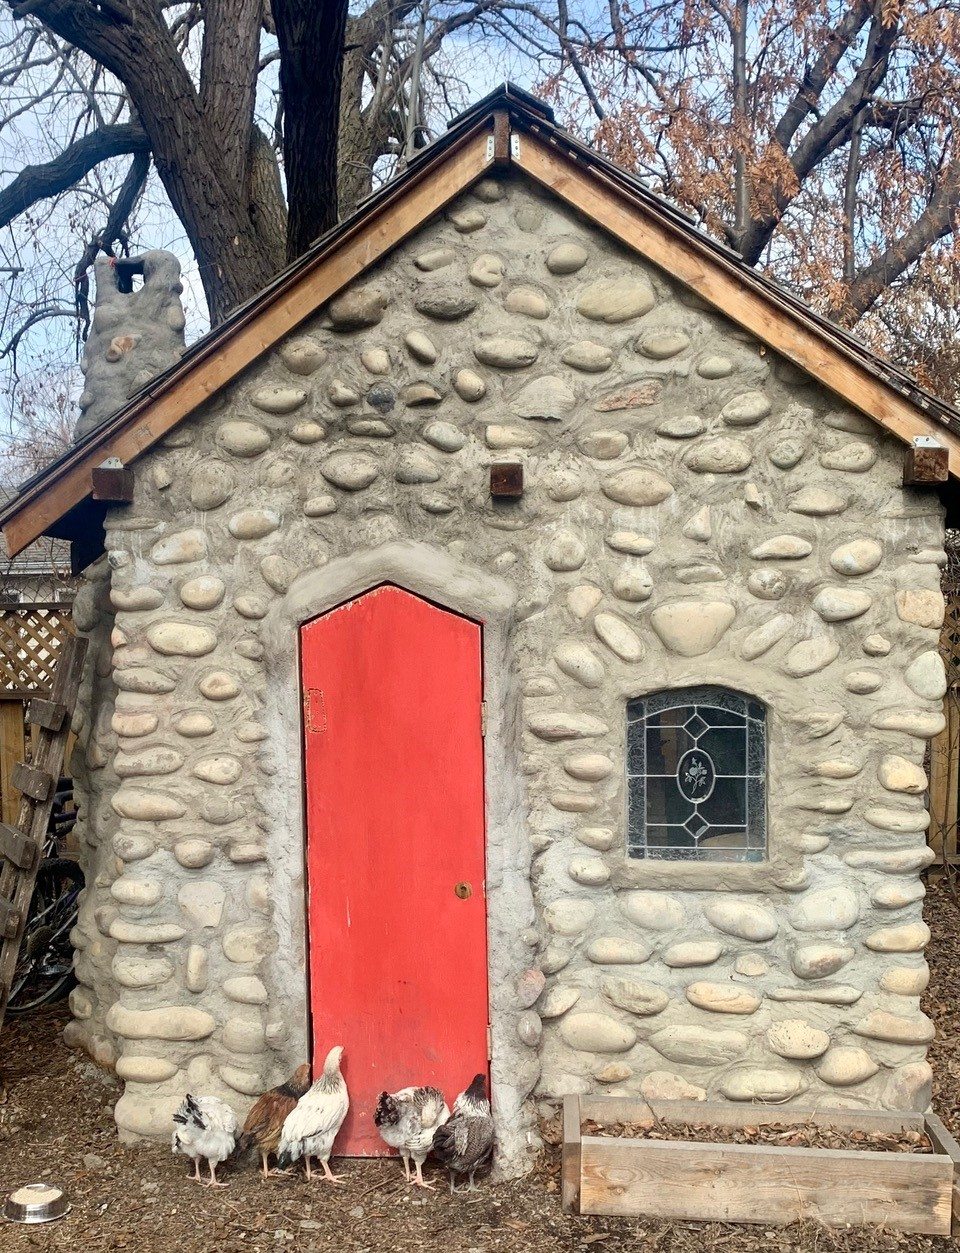 A stone shack with a teeny window and a narrow red door, with chickens standing outside